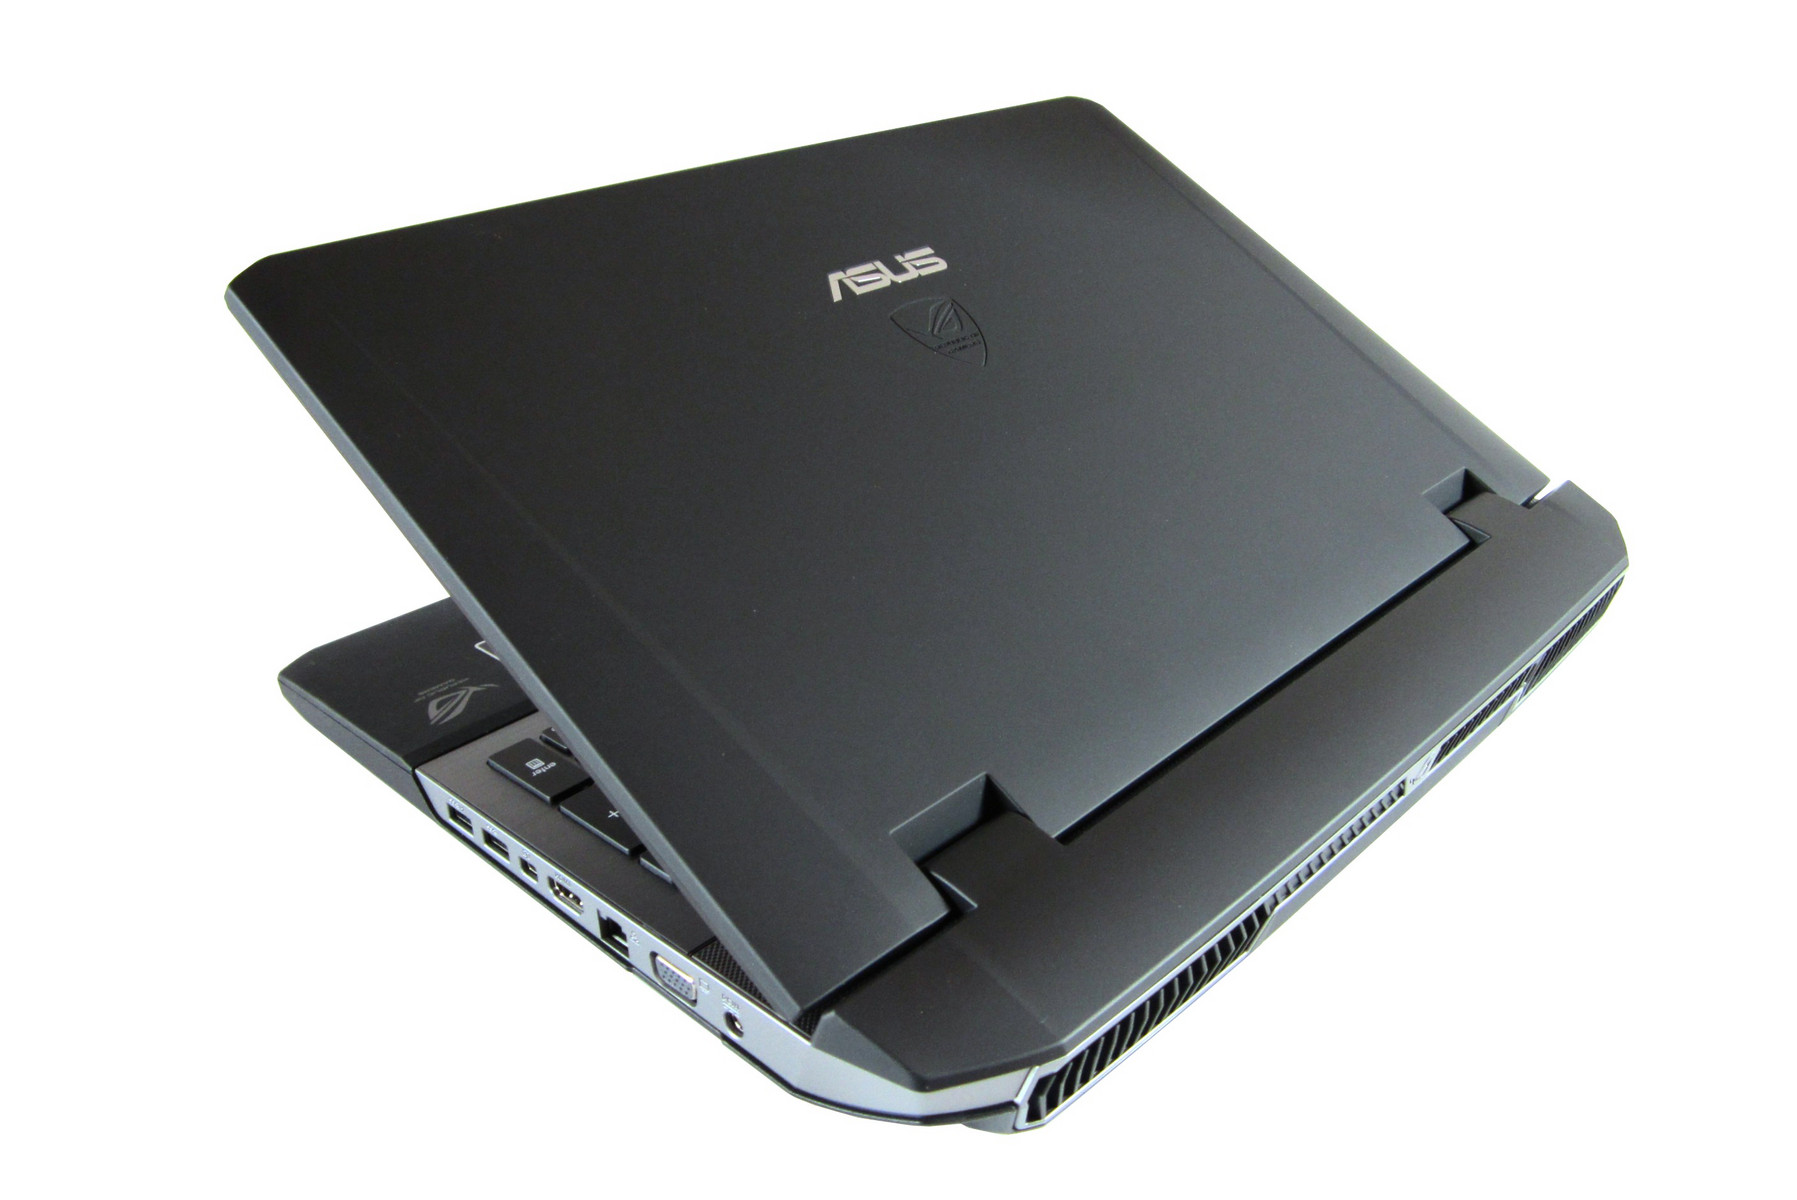 ASUS G75VW NOTEBOOK NVIDIA DISPLAY WINDOWS XP DRIVER